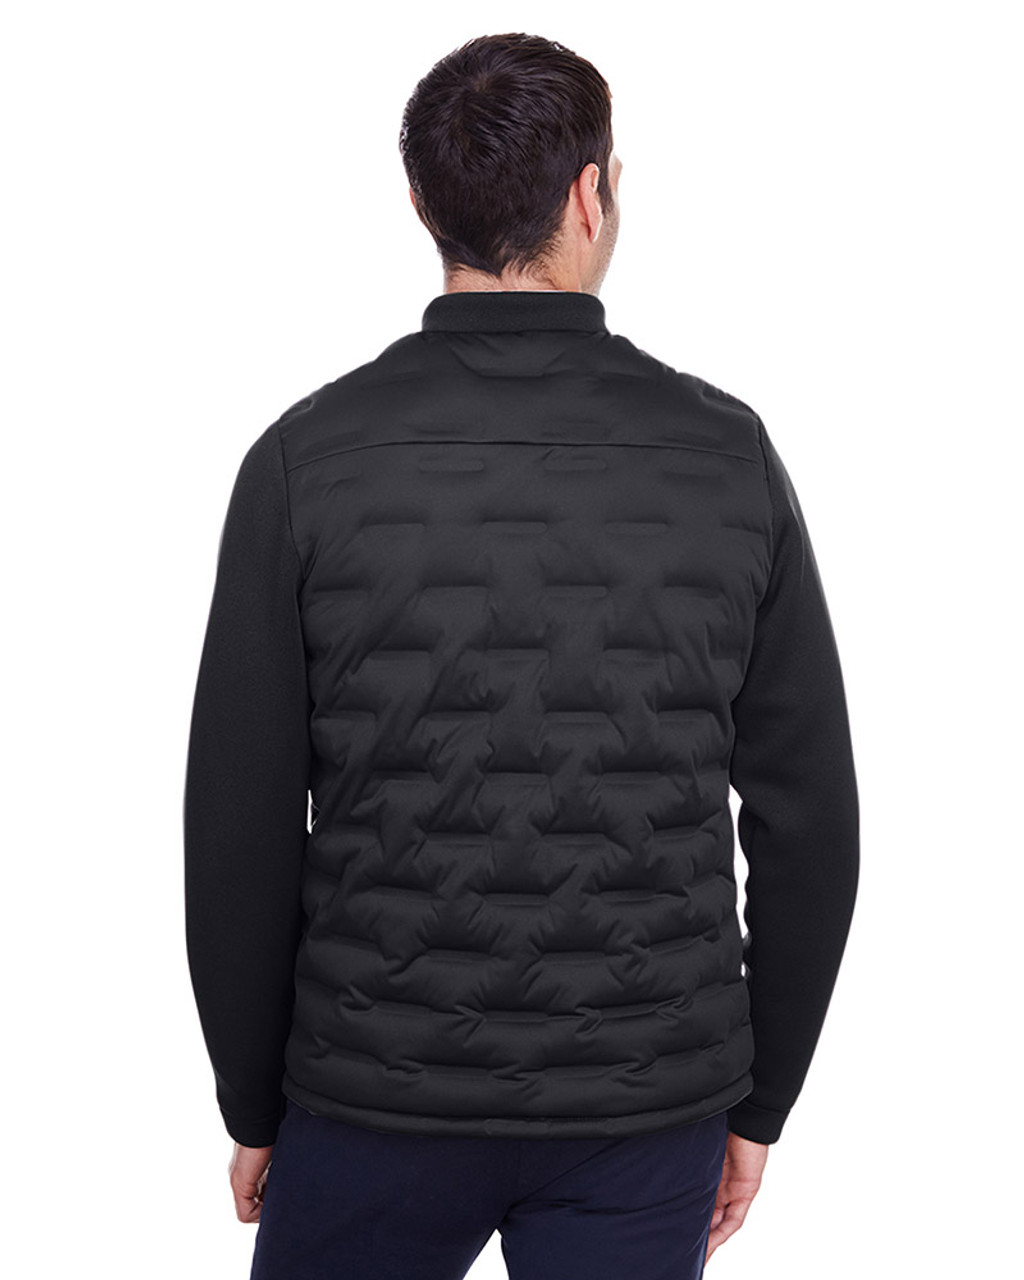 Black/Black/Carbon - side, NE710 Ash City - North End Men's Pioneer Hybrid Bomber Jacket